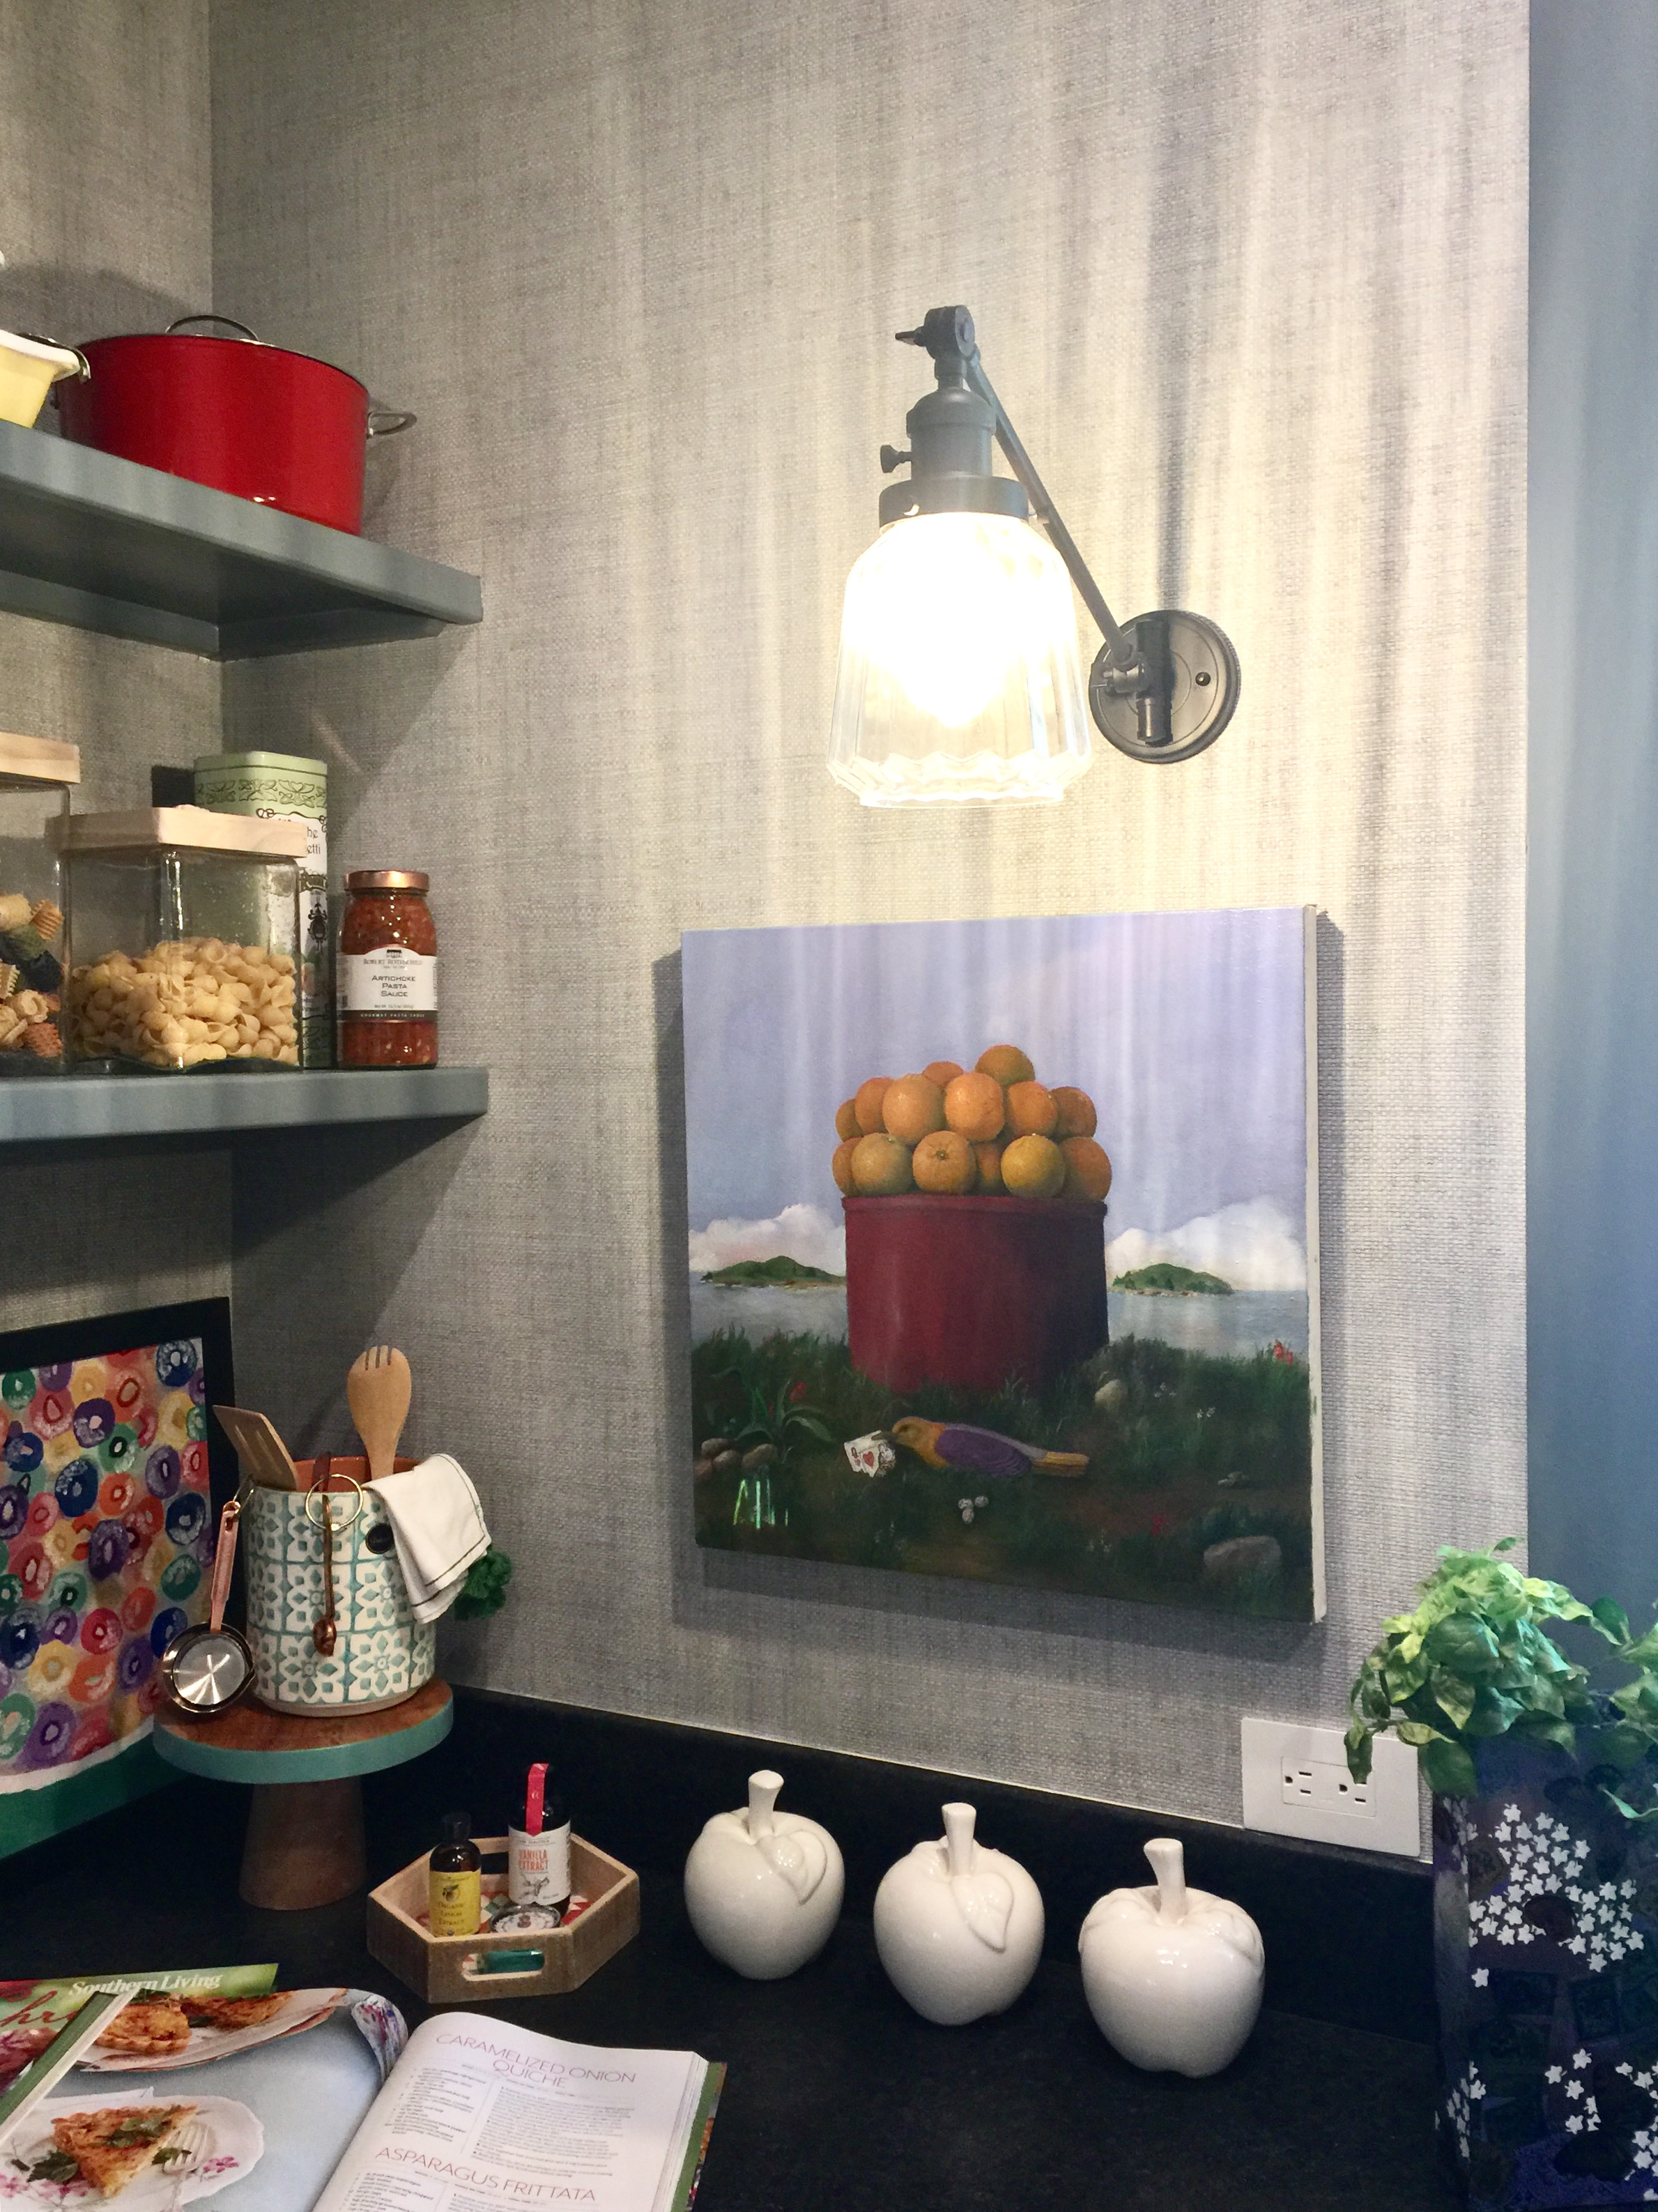 Southern Living Showcase Home - Pantry with vinyl wallcovering and art, Designed by Chairma Design Group